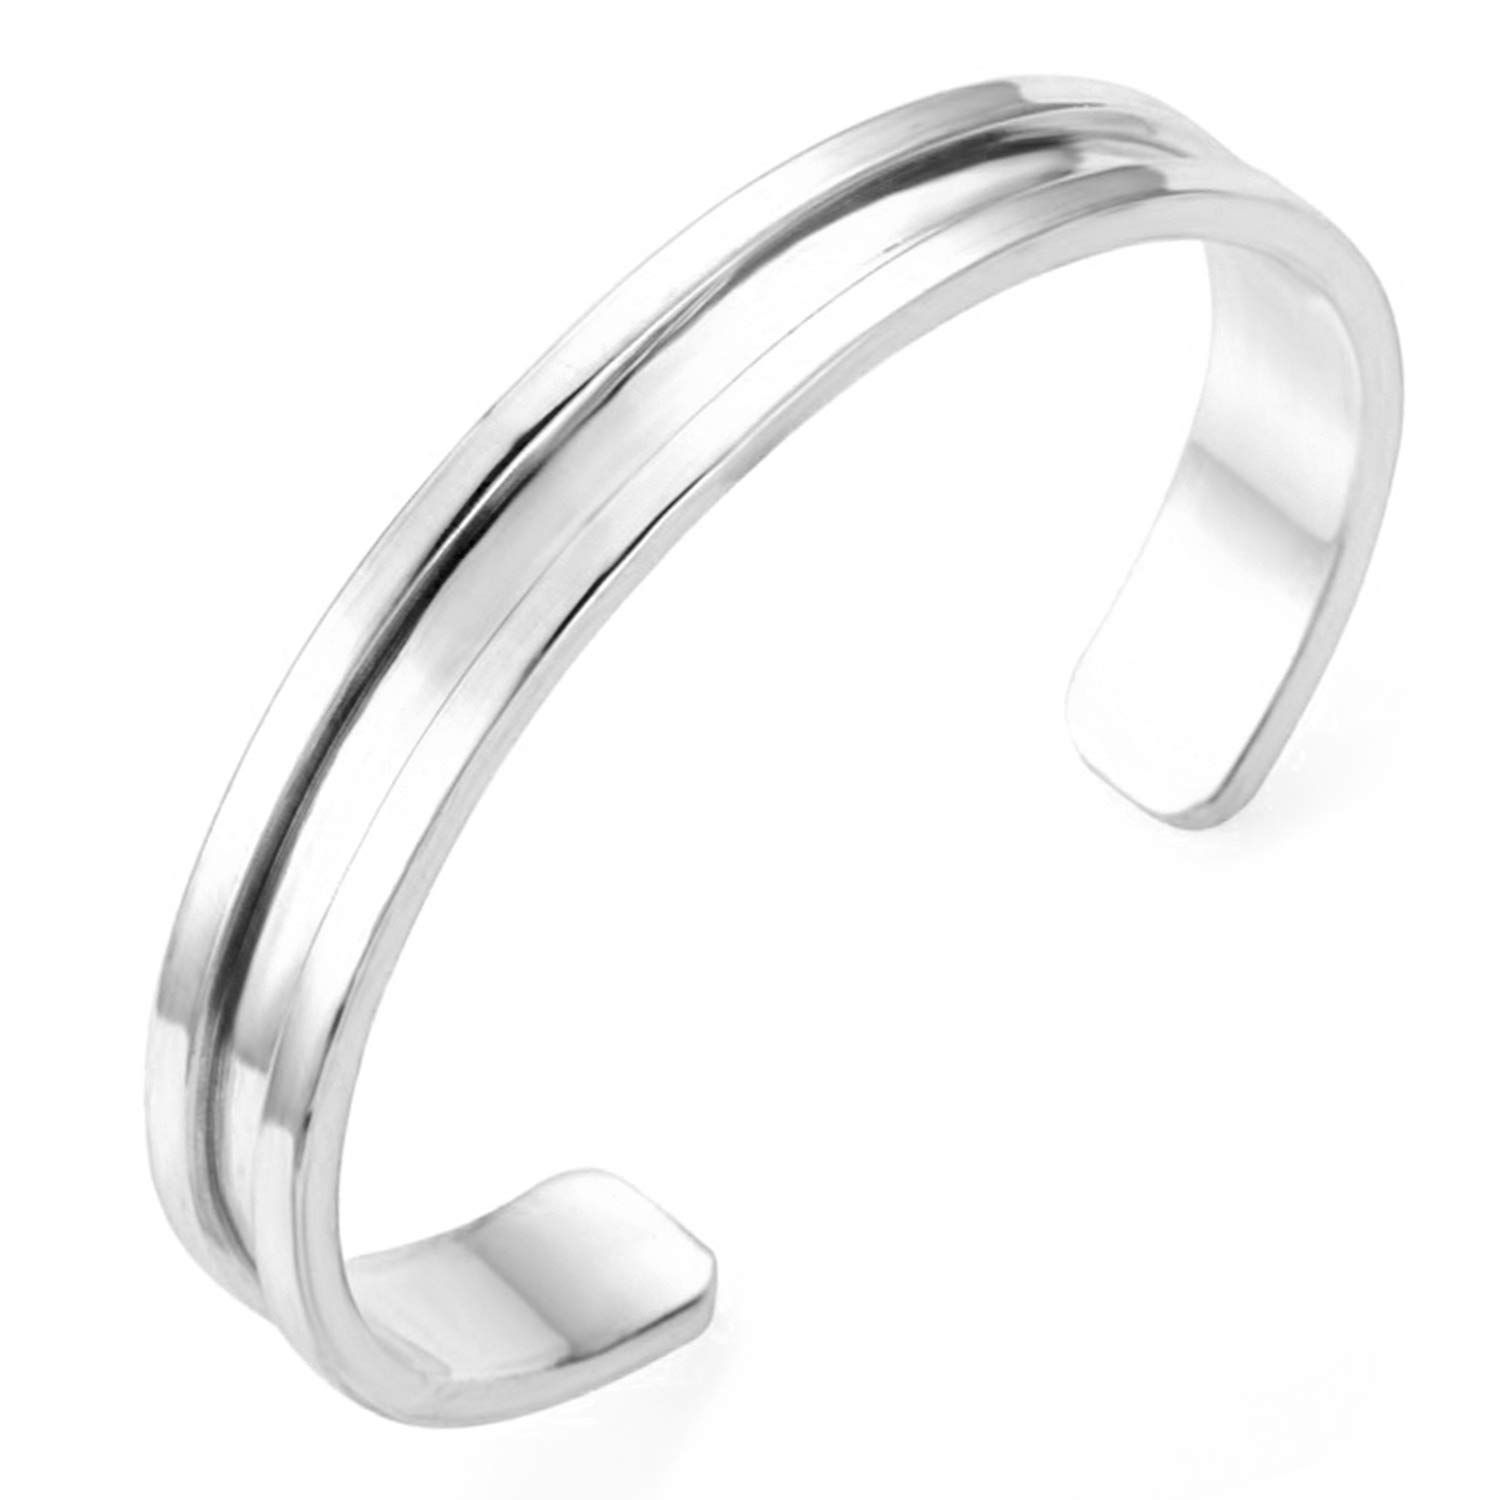 PANHAYO Stainless Steel Hair Tie Bracelet Deep Grooved Cuff Bangle Bracelet  for Women Men 3 Colors -- To view further for this item b89eebfd151